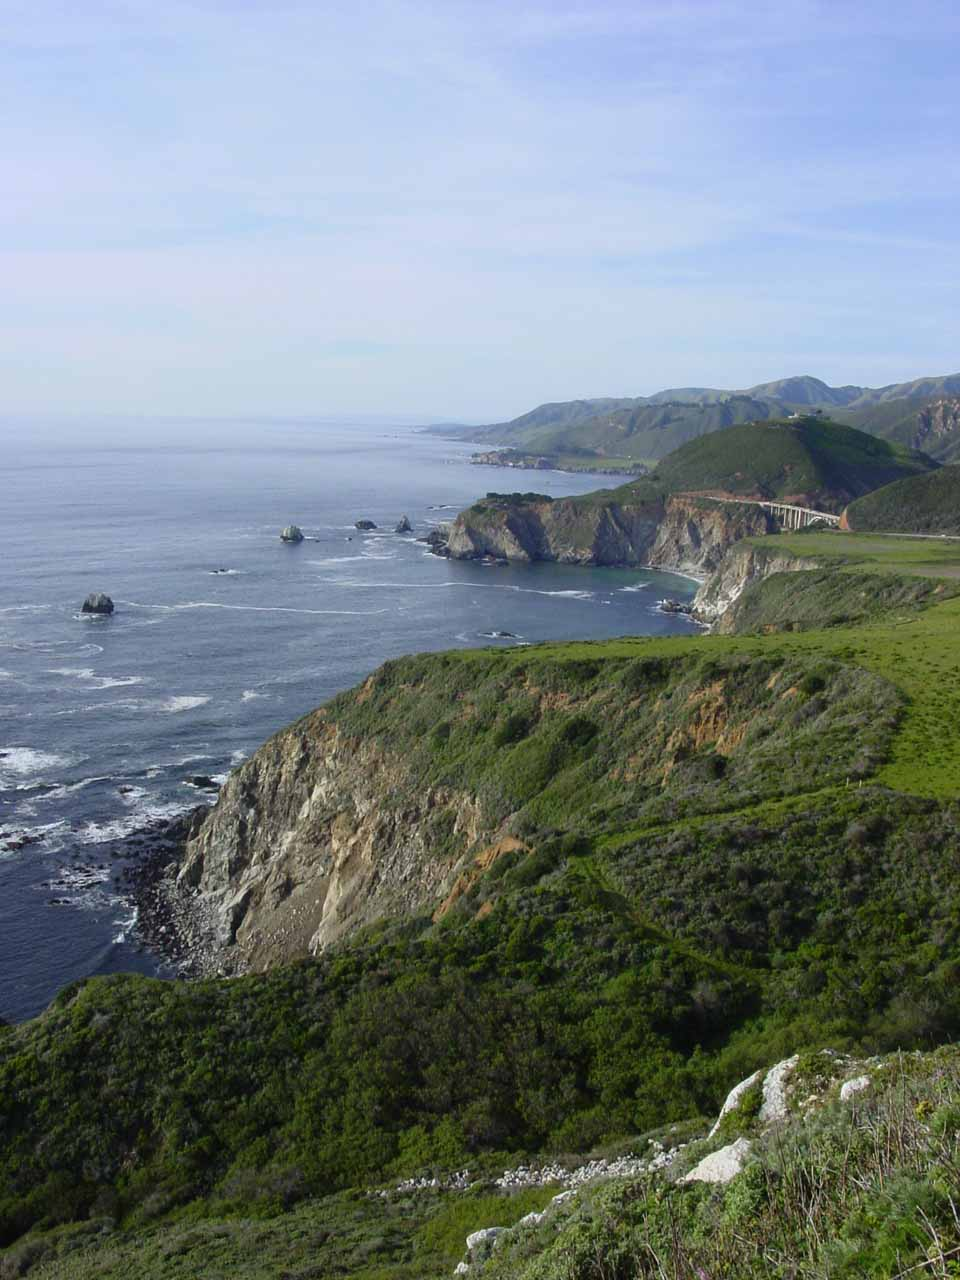 Looking in the other direction towards Bixby Bridge